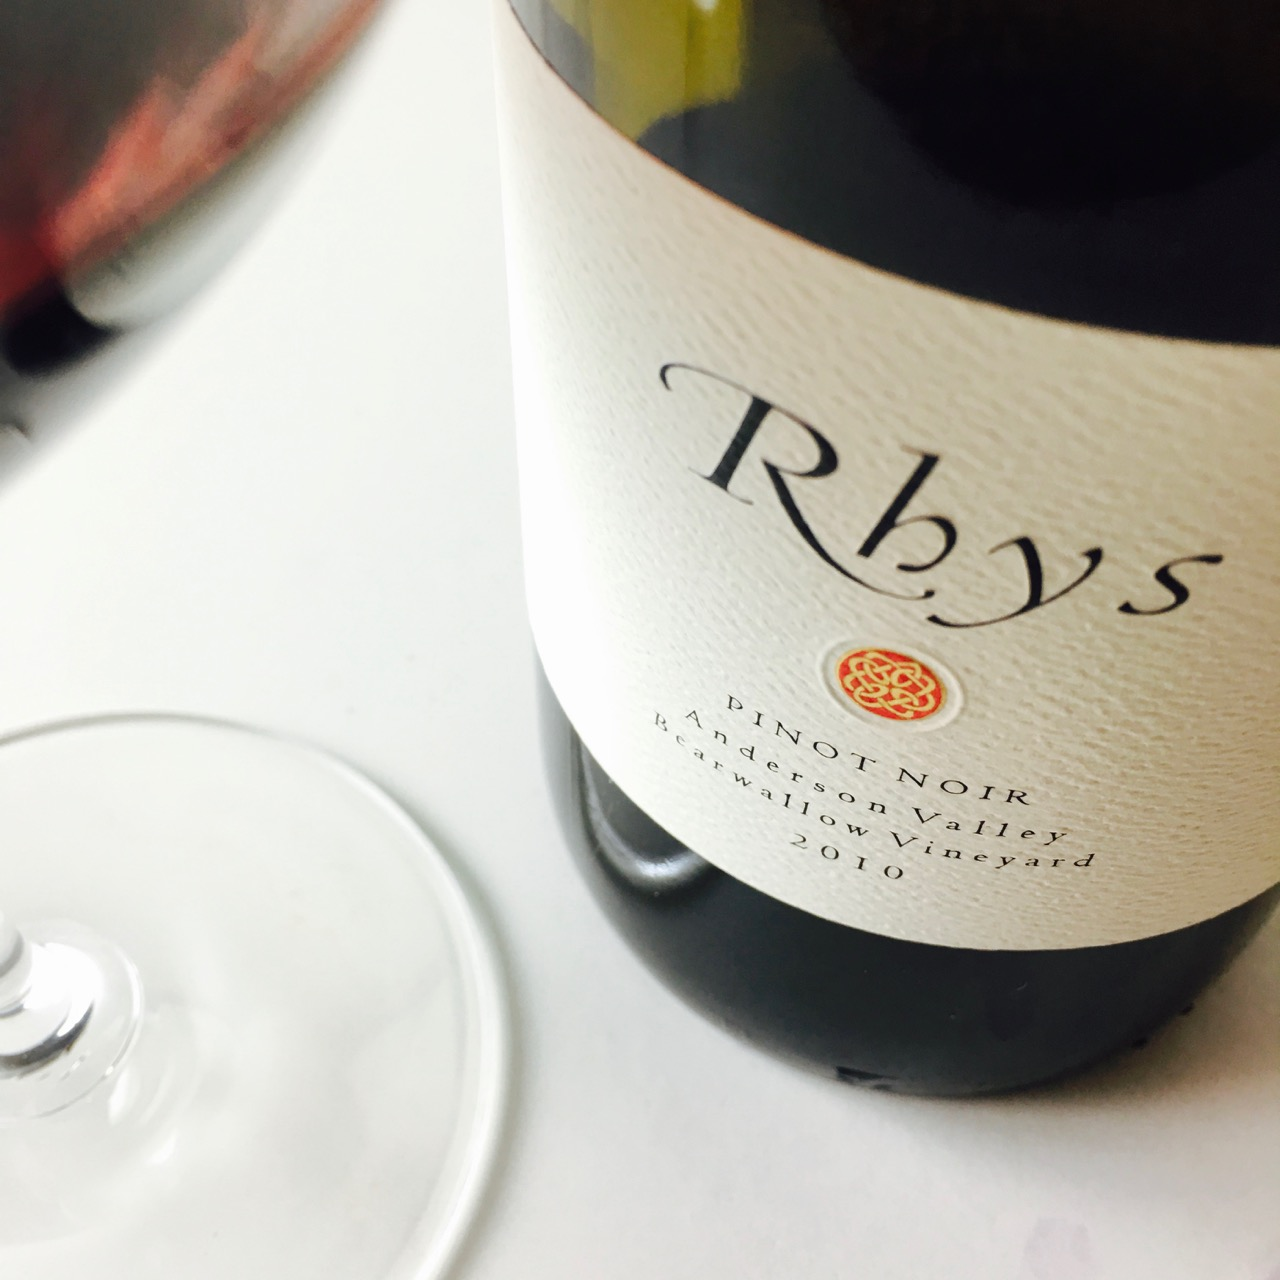 2010 Rhys Vineyards Pinot Noir Bearwallow Vineyard Anderson Valley